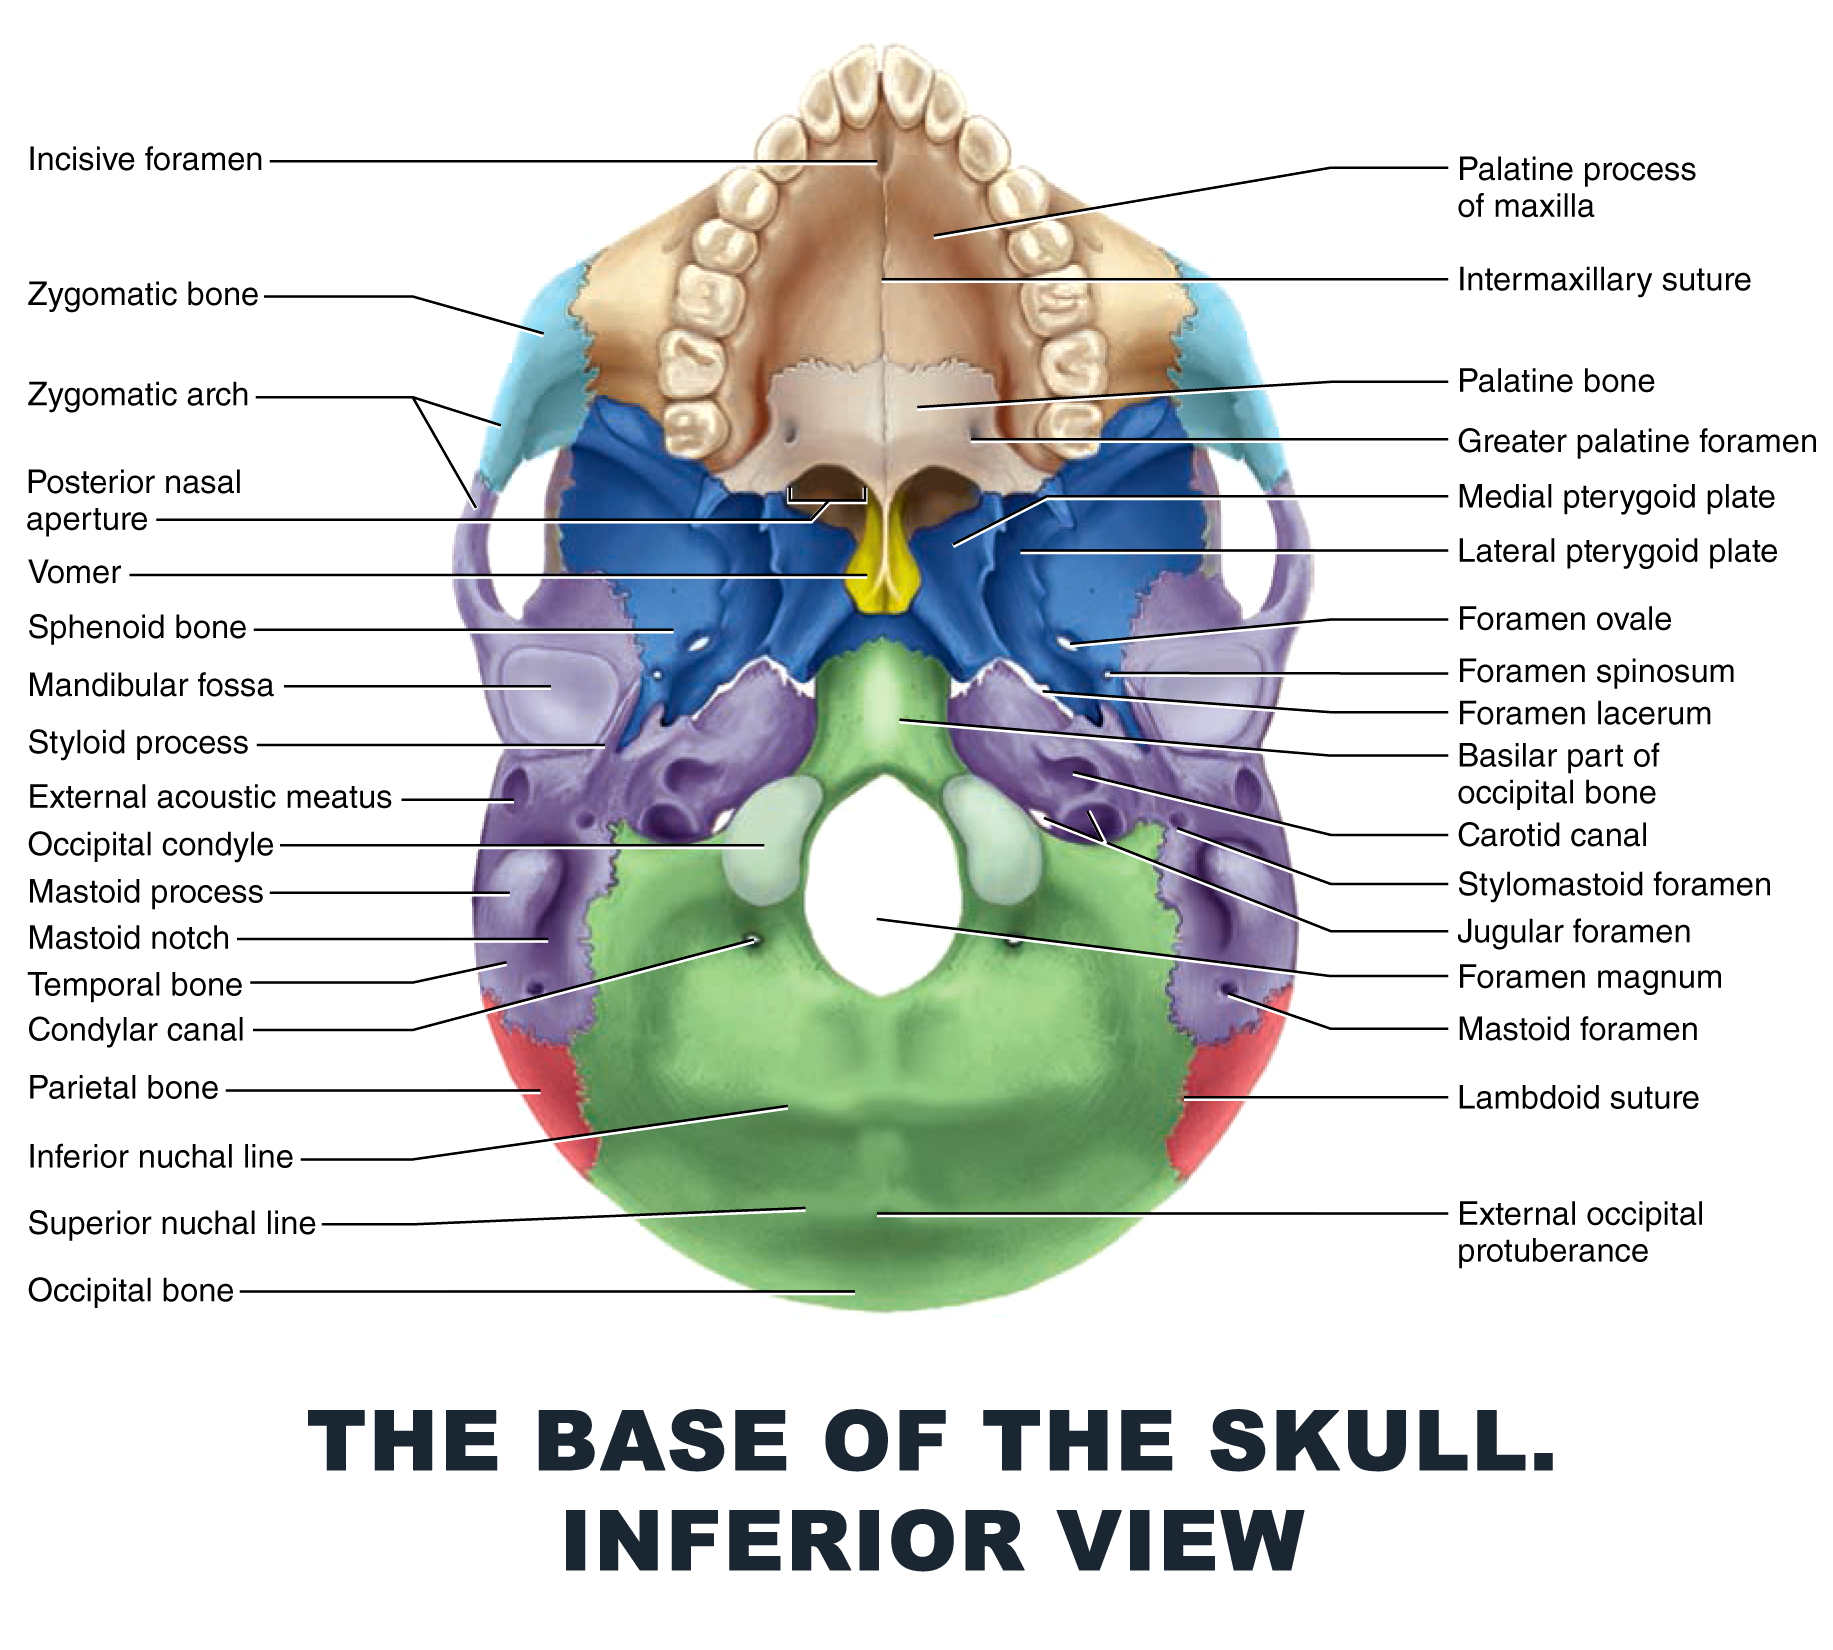 328129522825023554 as well Skull Diagram Inferior Superficial View furthermore 1549 as well M46355 furthermore Skull. on printable skull labeling exercises